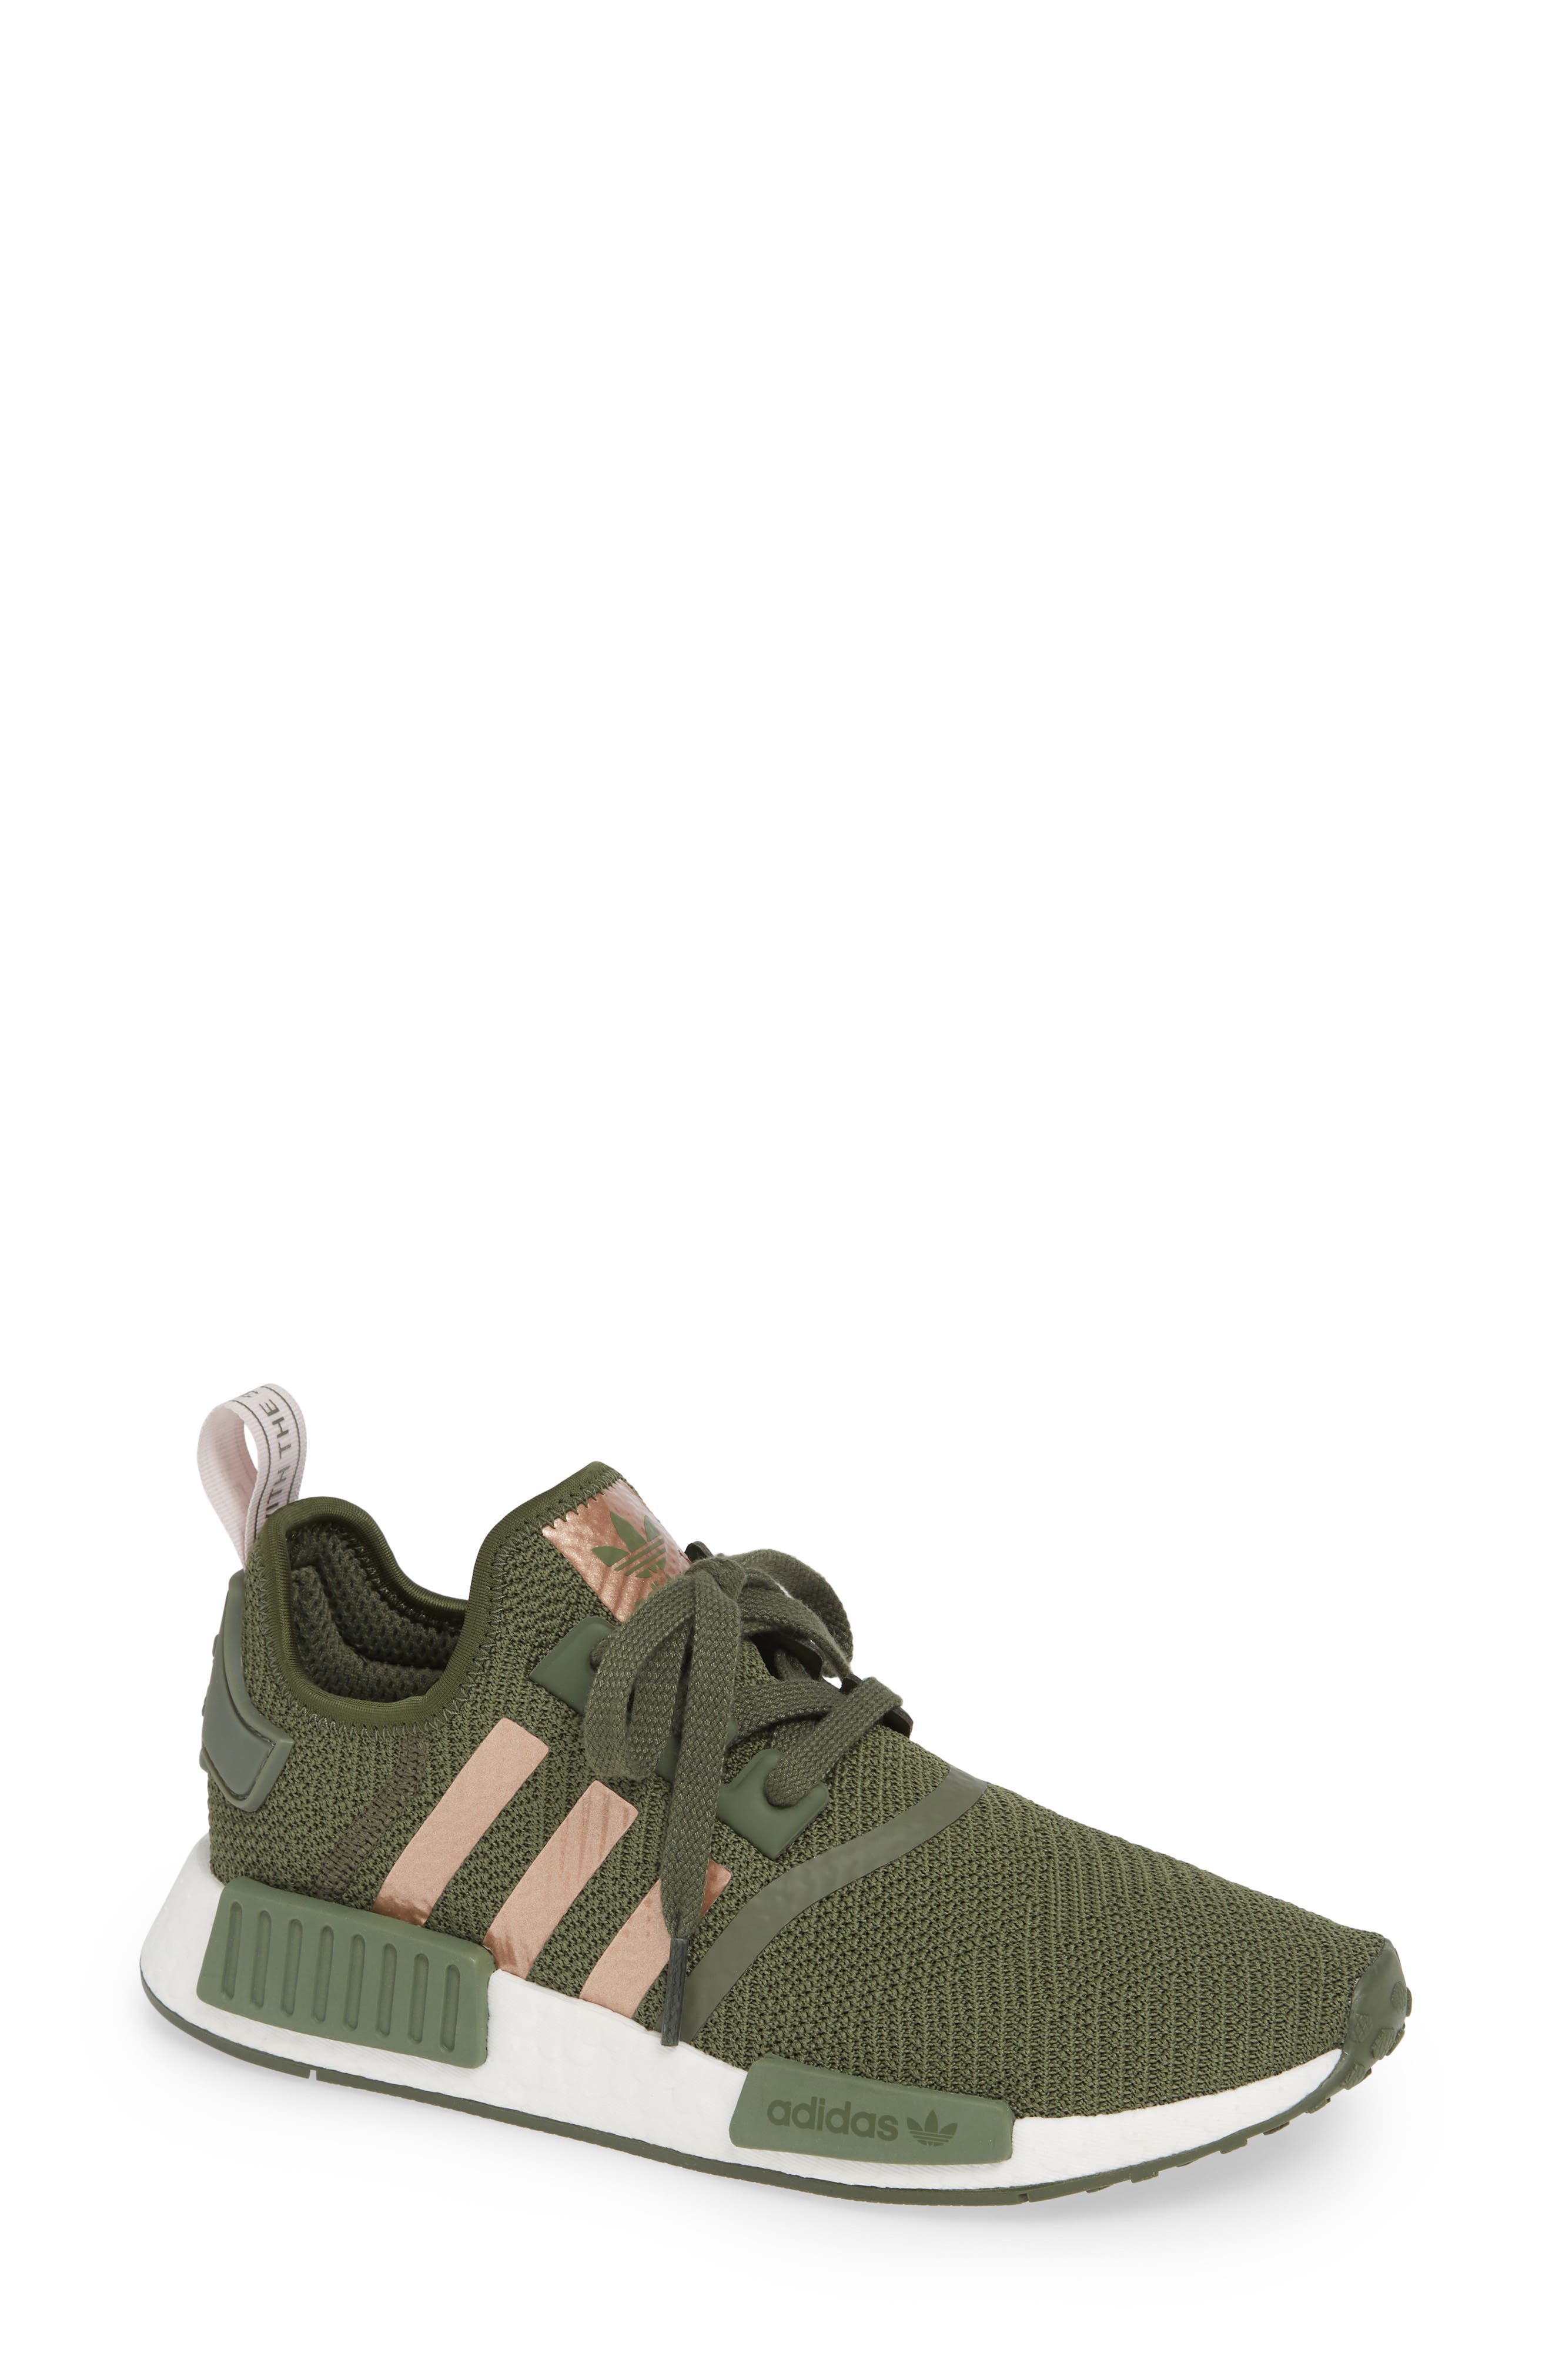 NMD R1 Athletic Shoe,                             Main thumbnail 1, color,                             BASE GREEN/ SUPER POP